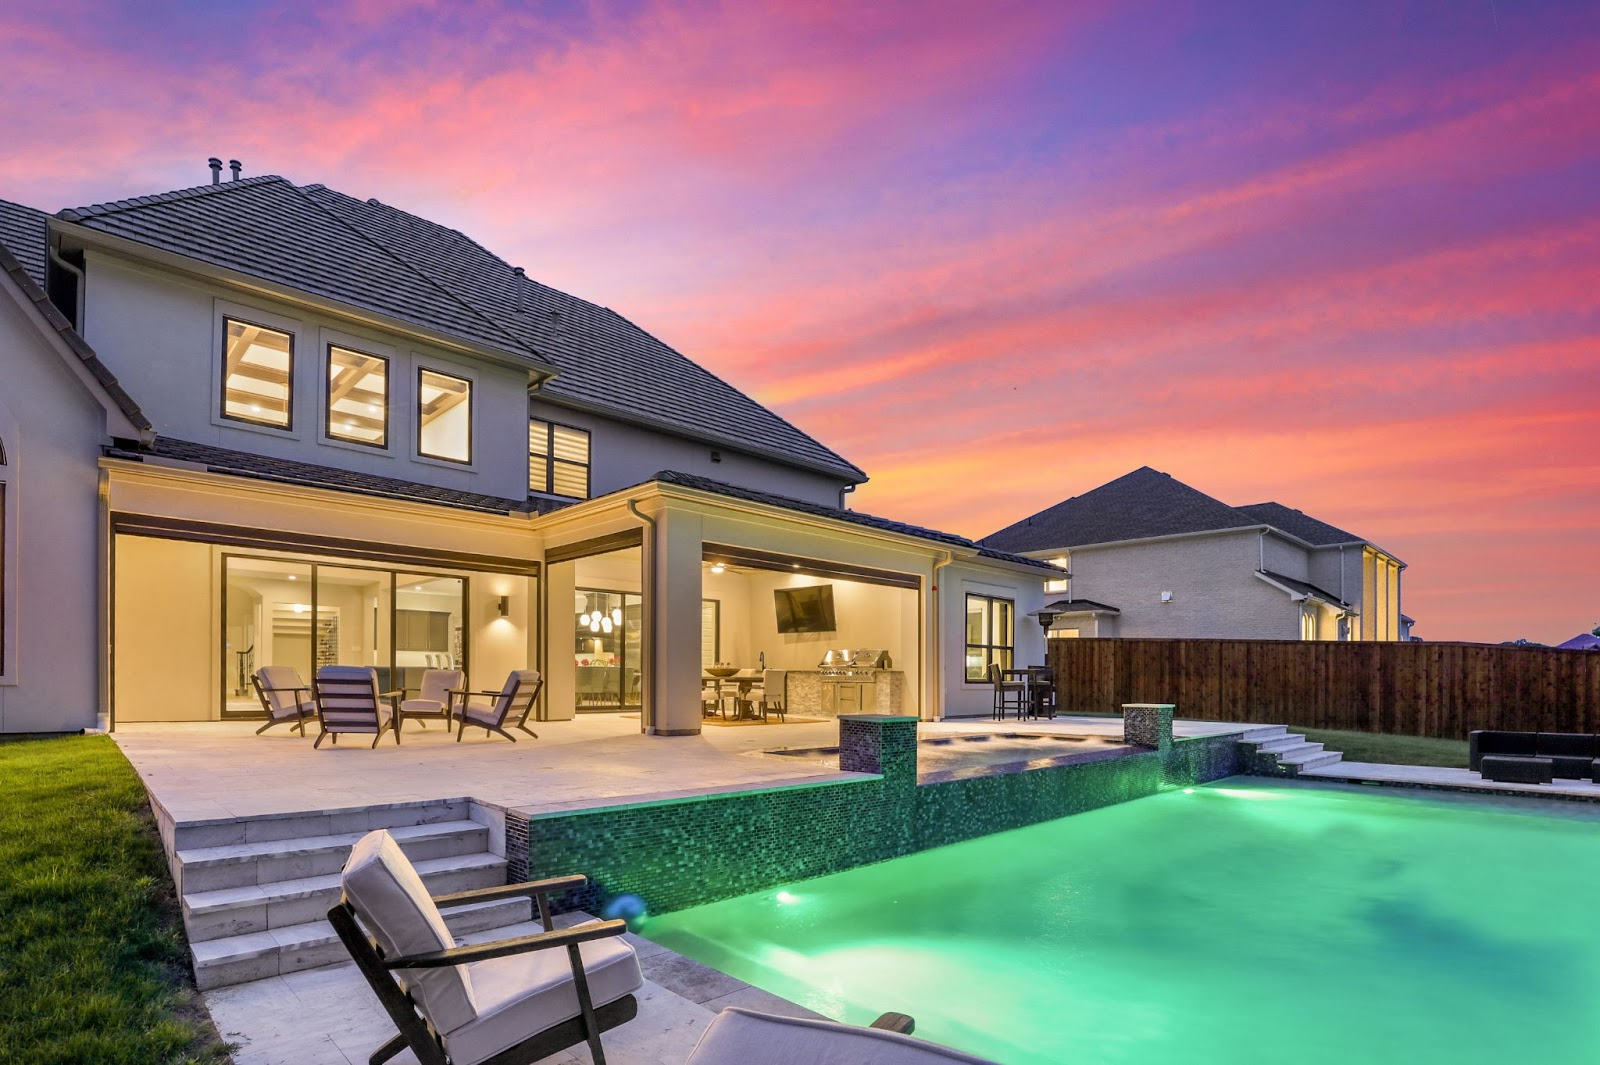 Benefits of a Twilight Shoot for Real Estate Photography